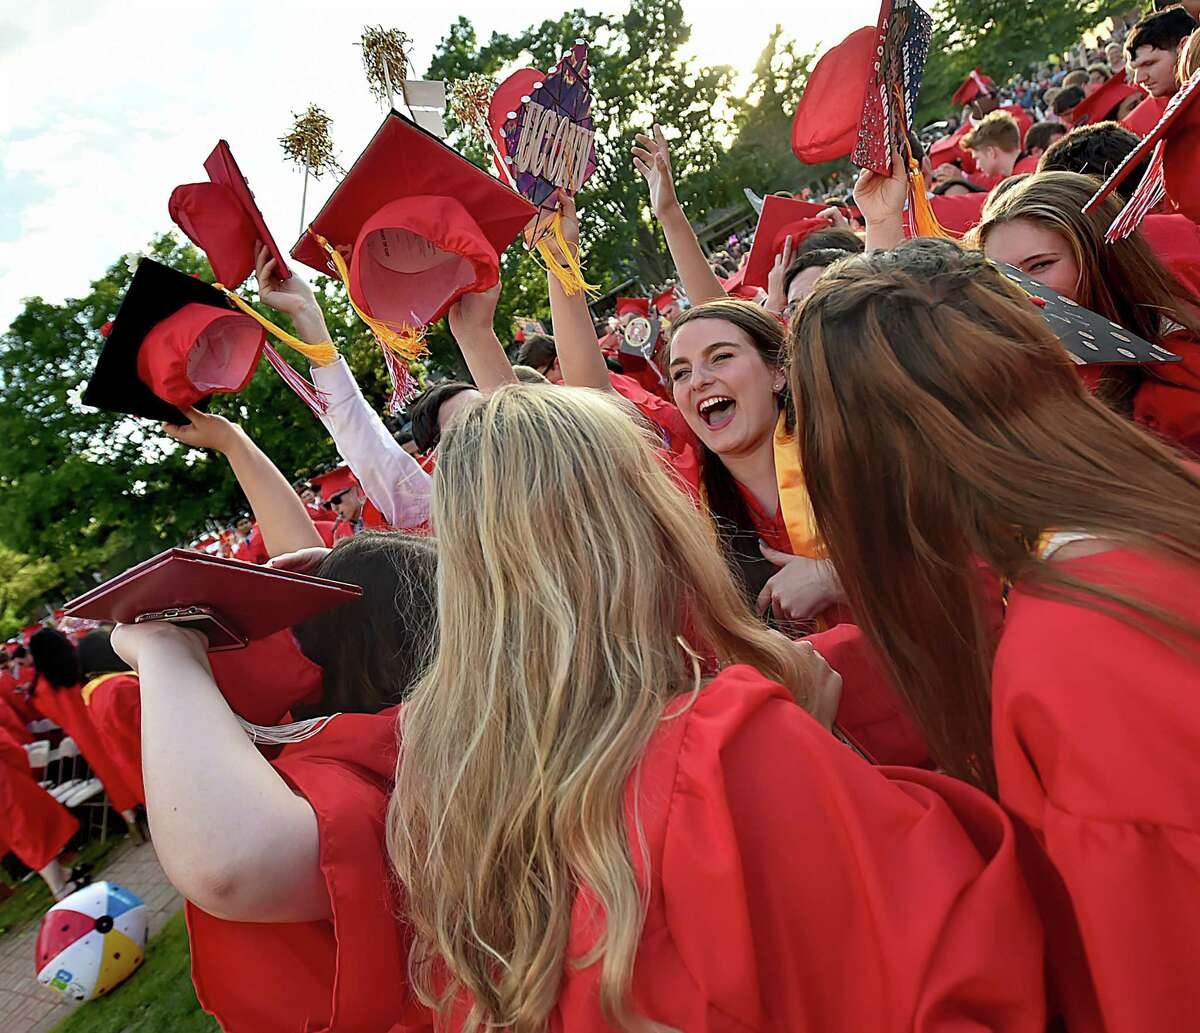 Members of Branford High School's class of 2017 huddle around after tossing their motor boards in the air at commencement exercises, Friday, June 9, 2017, at the Branford Town Green. (Catherine Avalone / Hearst Connecticut Media)